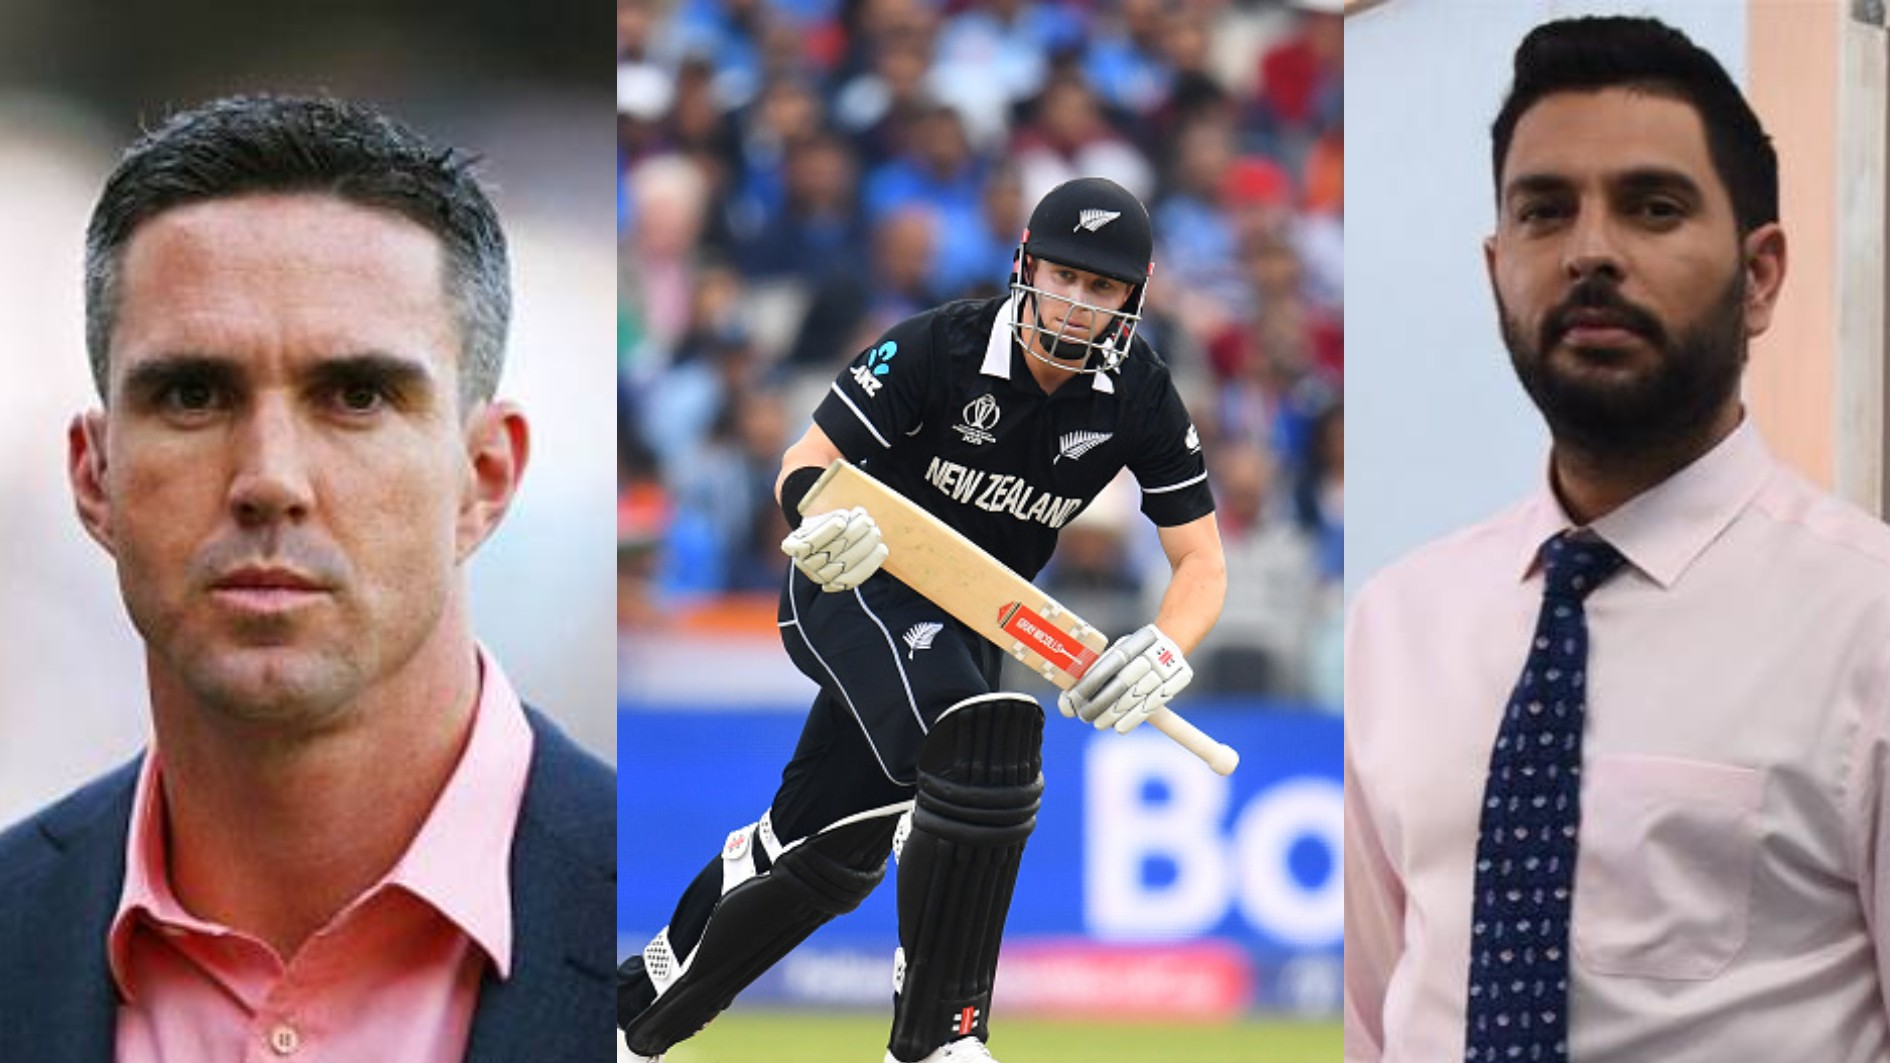 CWC 2019: Cricket fraternity reacts as England restricts New Zealand to 241/8 in the final; Henry Nicholls makes 55